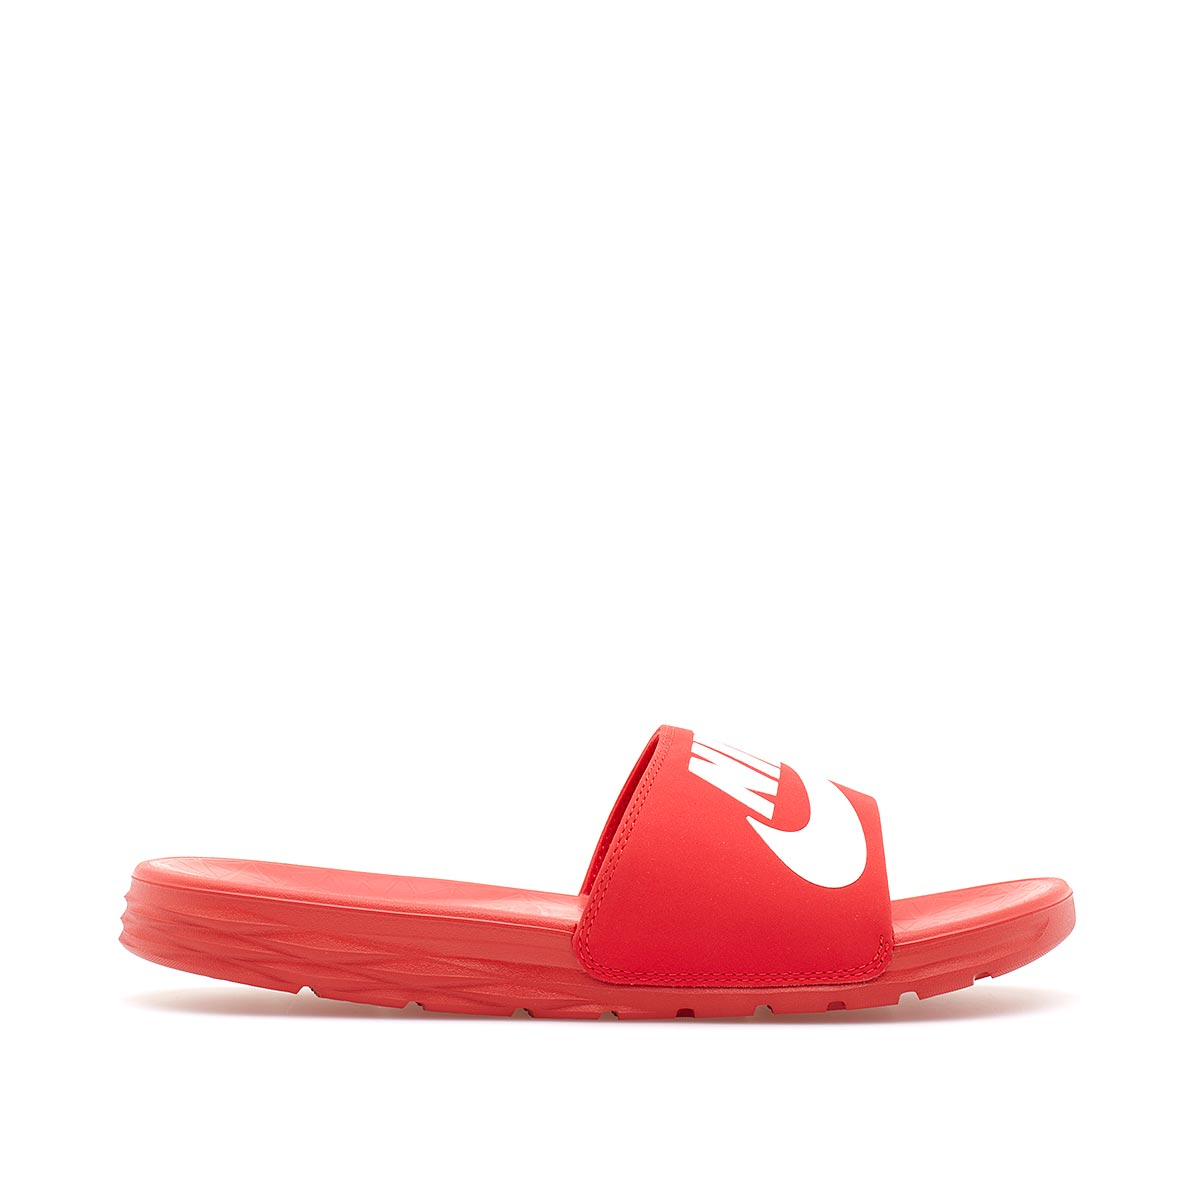 Benassi solarsoft slippers